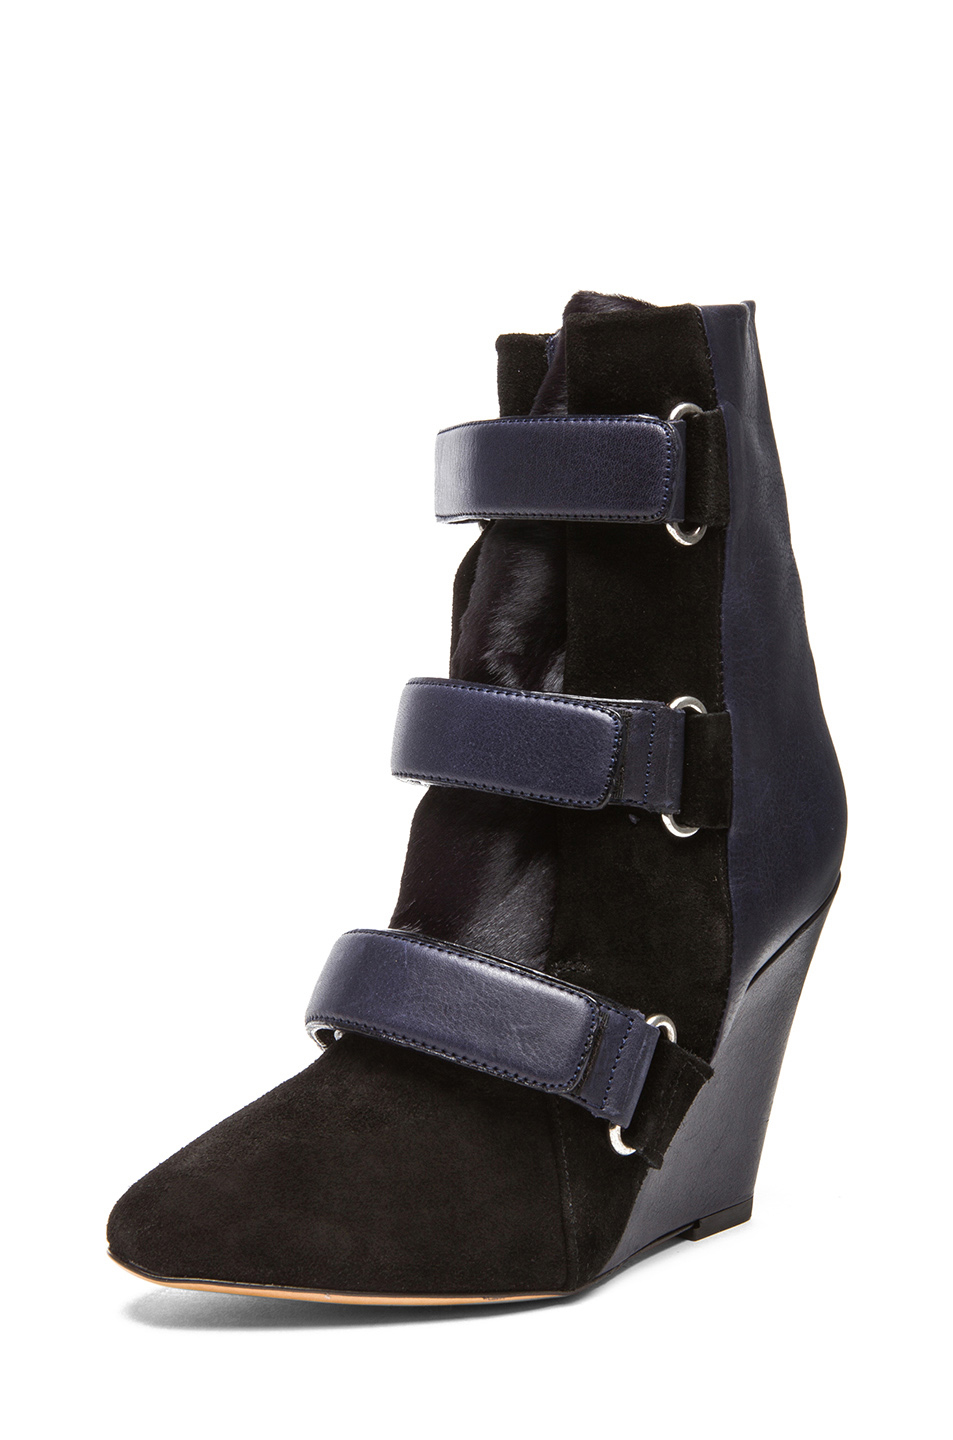 Isabel Marant|Scarlet Calfskin Suede Leather Wedge Bootie in Midnight